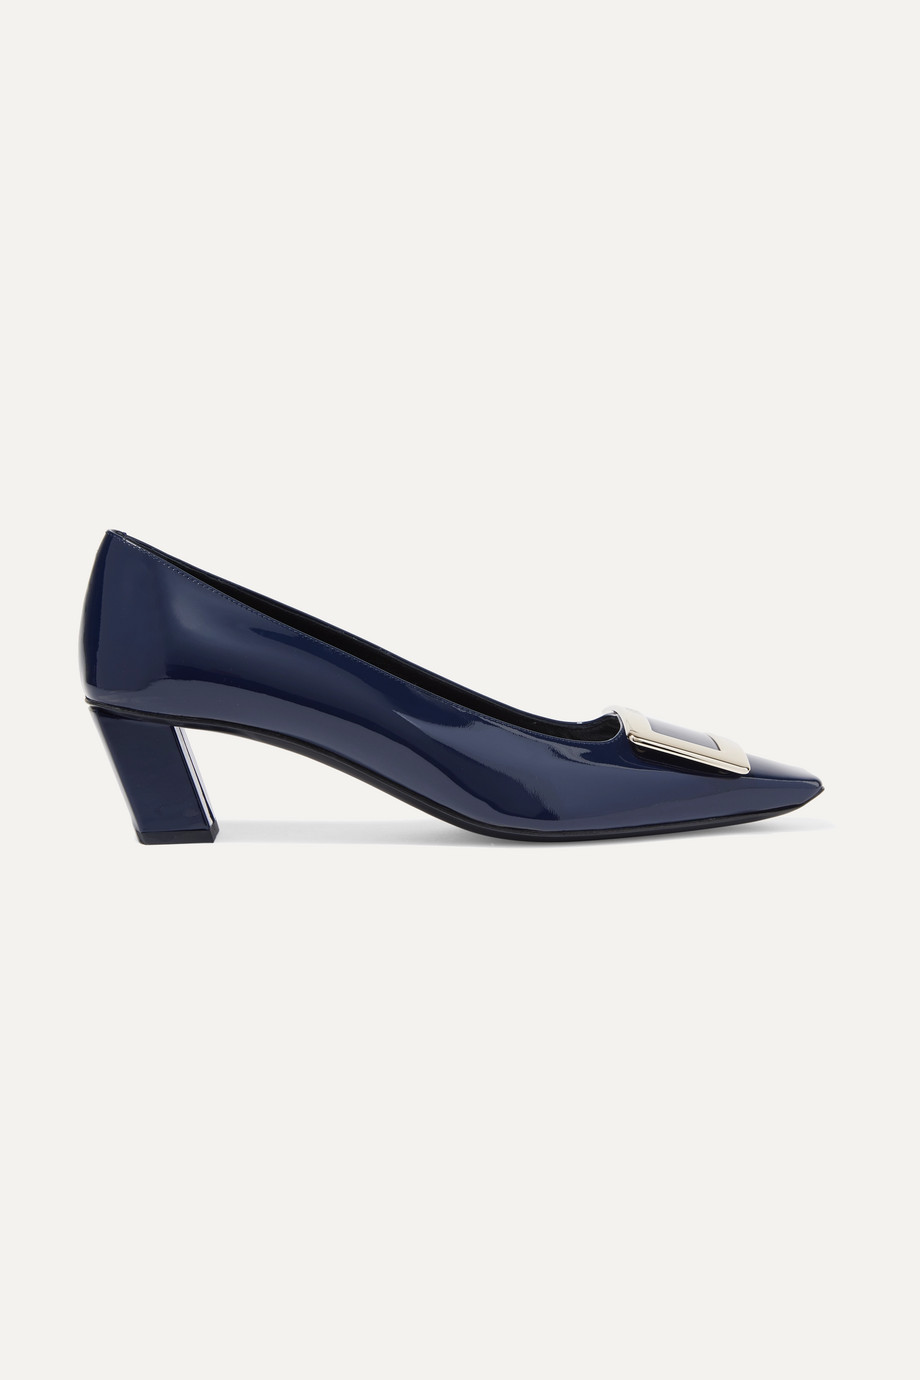 Roger Vivier Belle Vivier patent-leather pumps